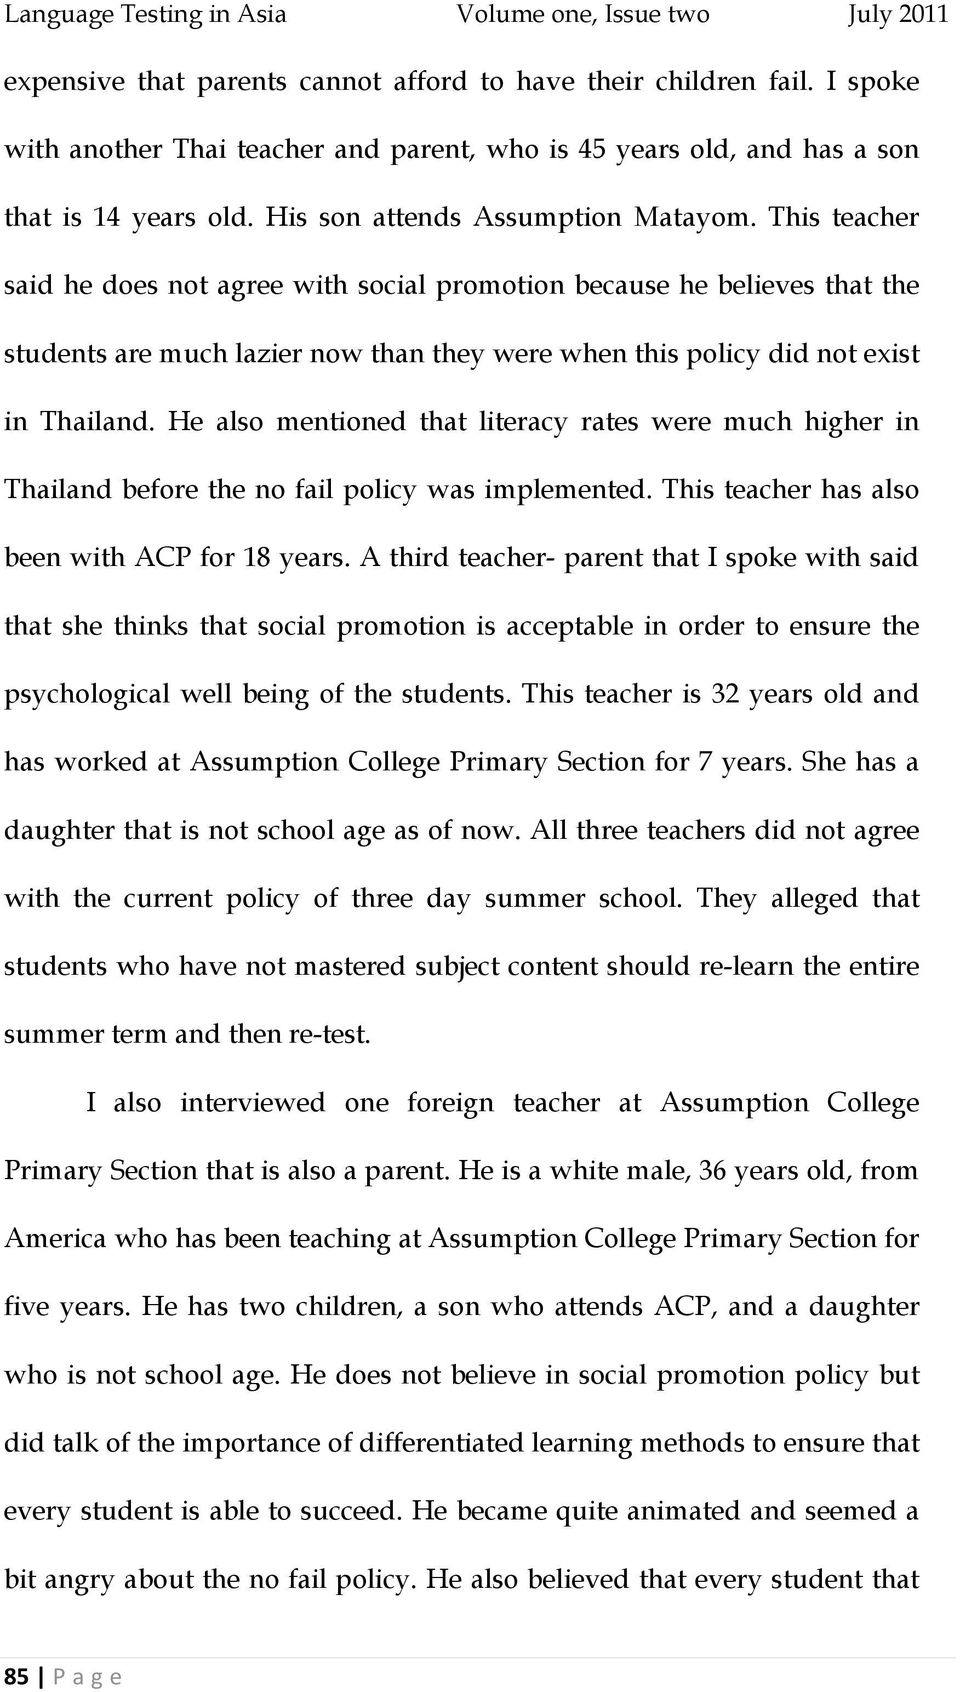 This teacher said he does not agree with social promotion because he believes that the students are much lazier now than they were when this policy did not exist in Thailand.